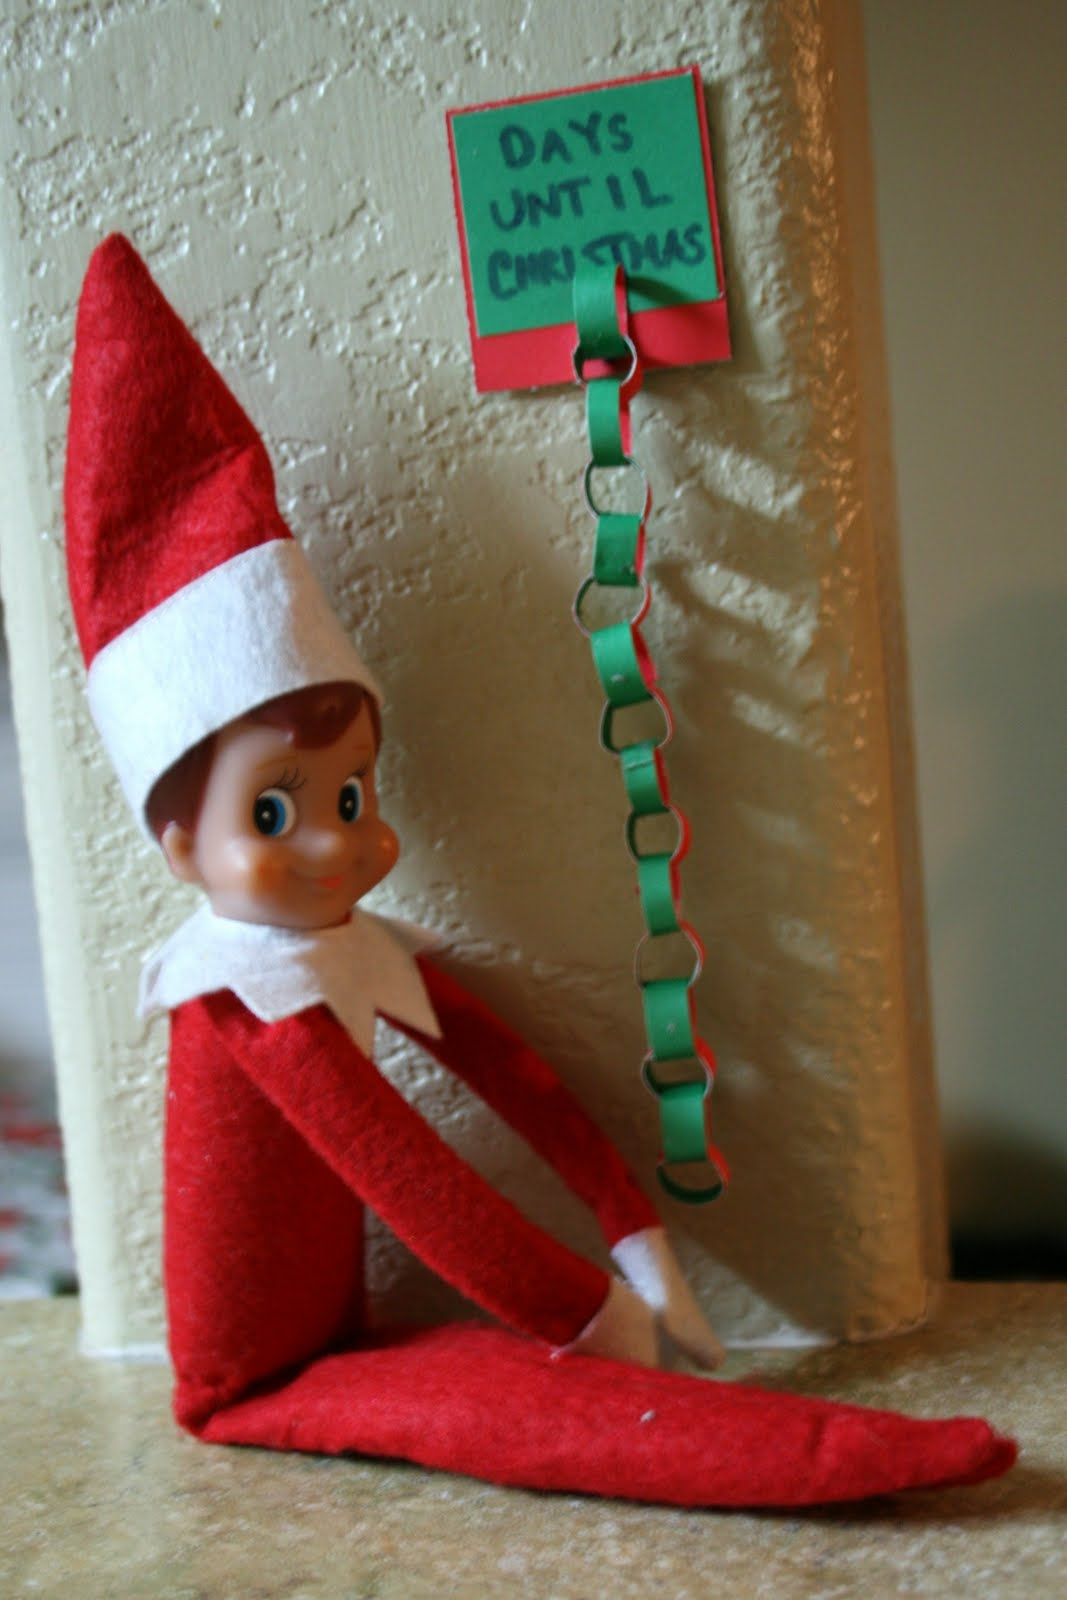 Misadventures of jingle bob elf | 25+ elf on the shelf ideas